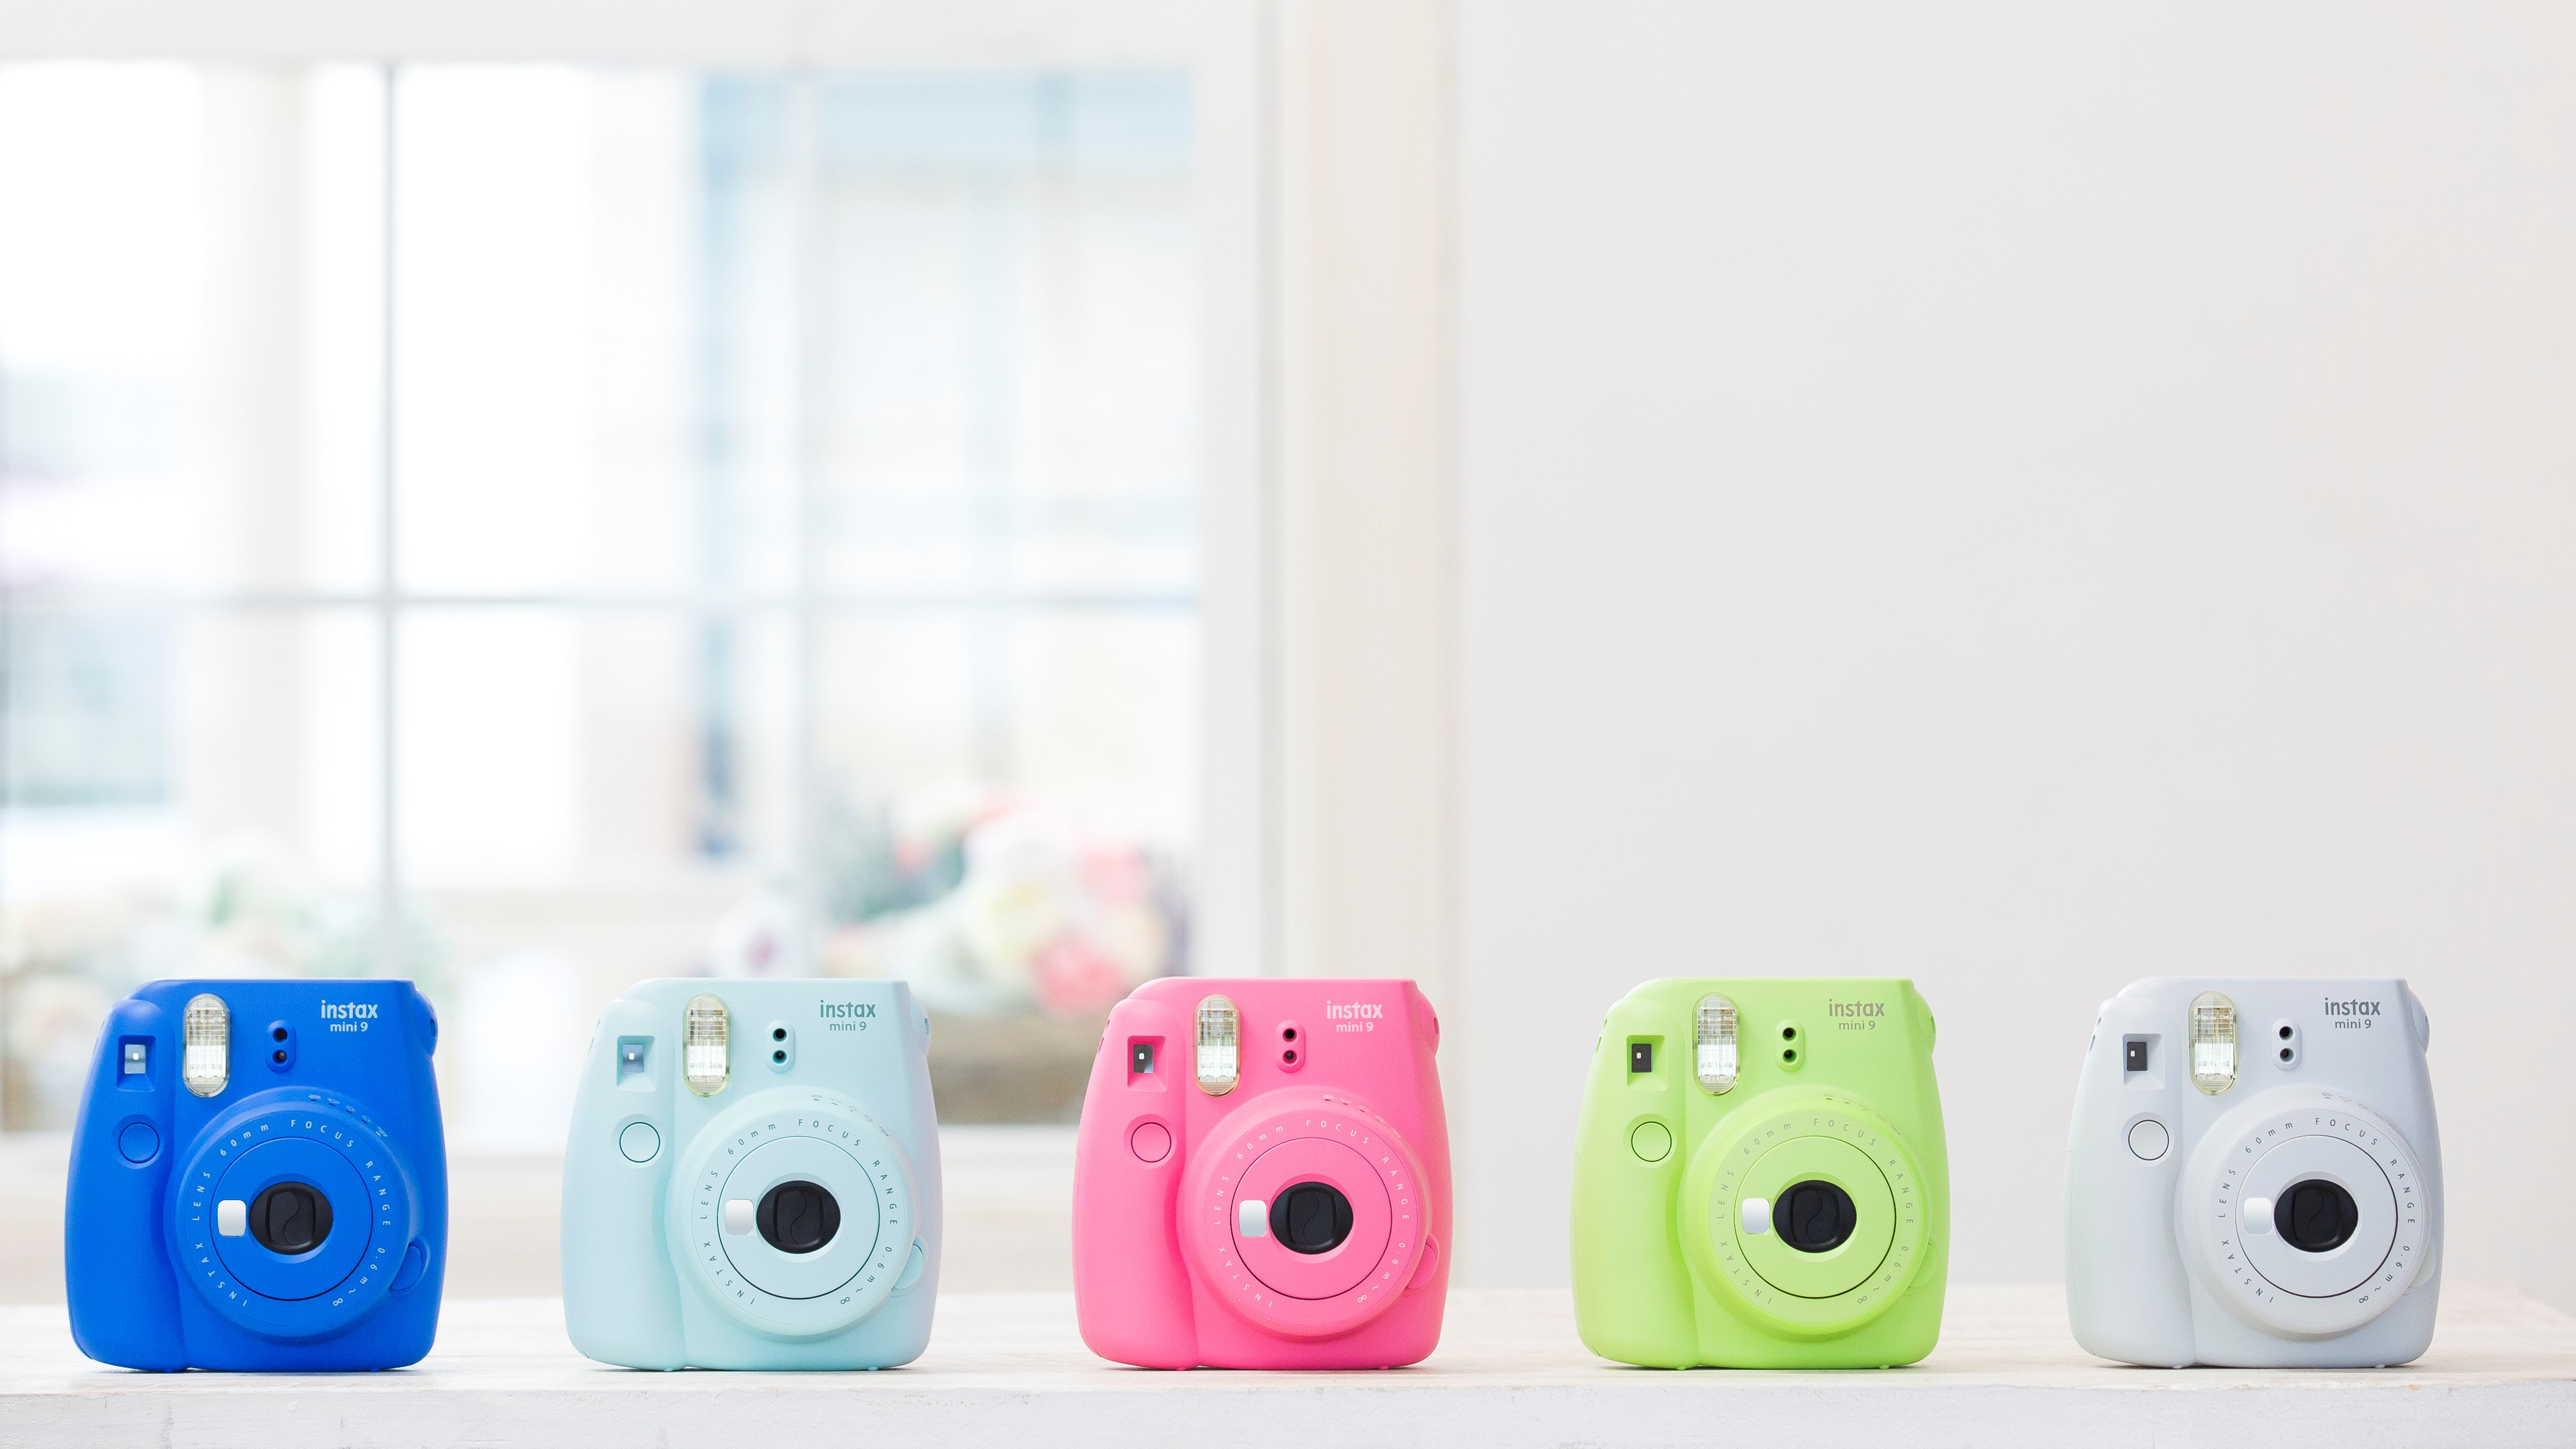 Fujifilm Instax Mini 11 to be launched alongside the X-T4 on February 26